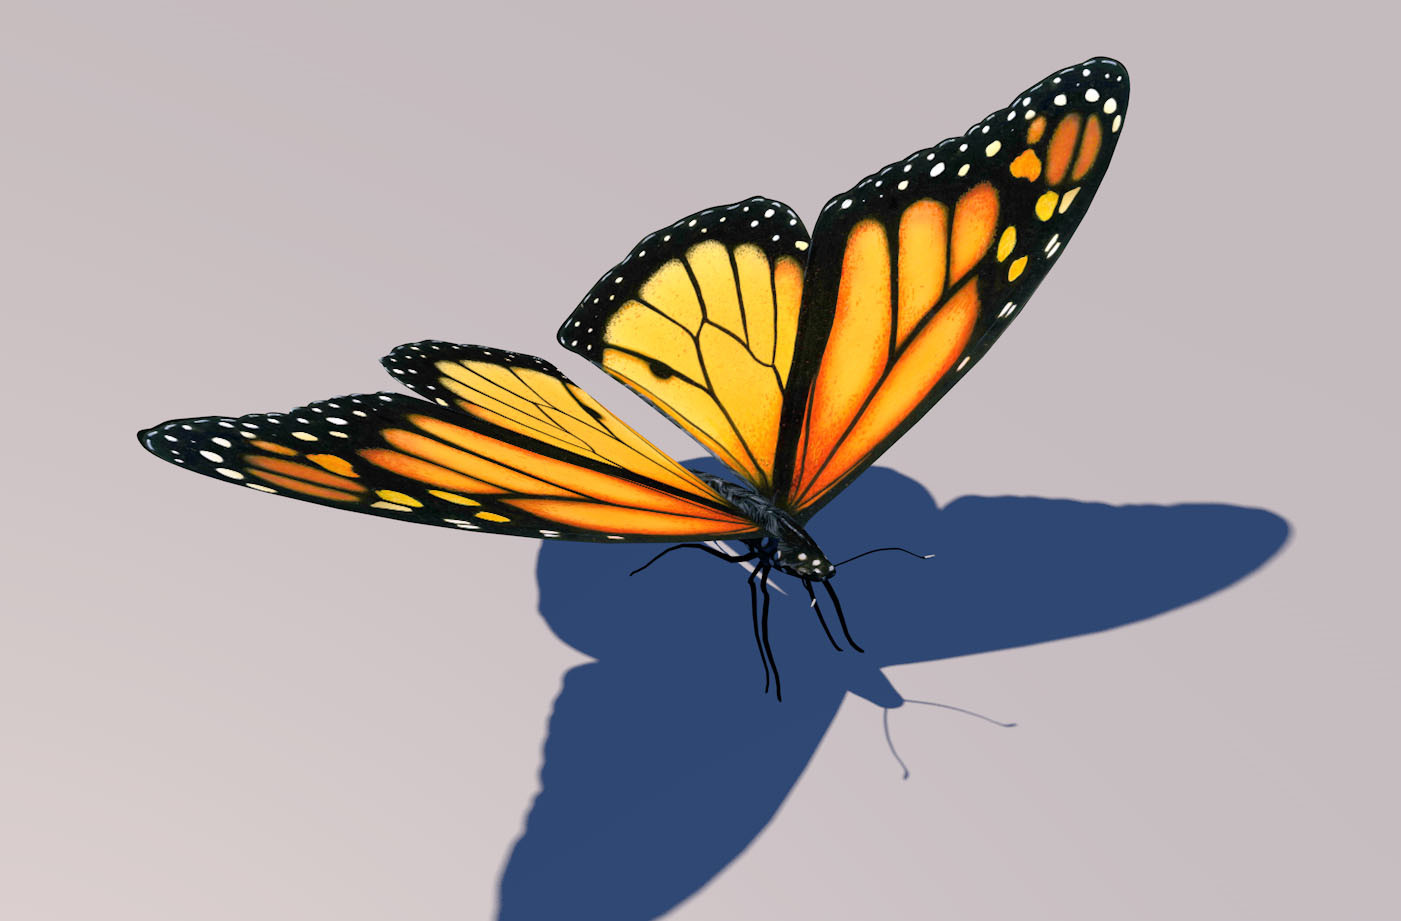 Flying Butterfly Animated Monarch Butterfly Animation 3d Model